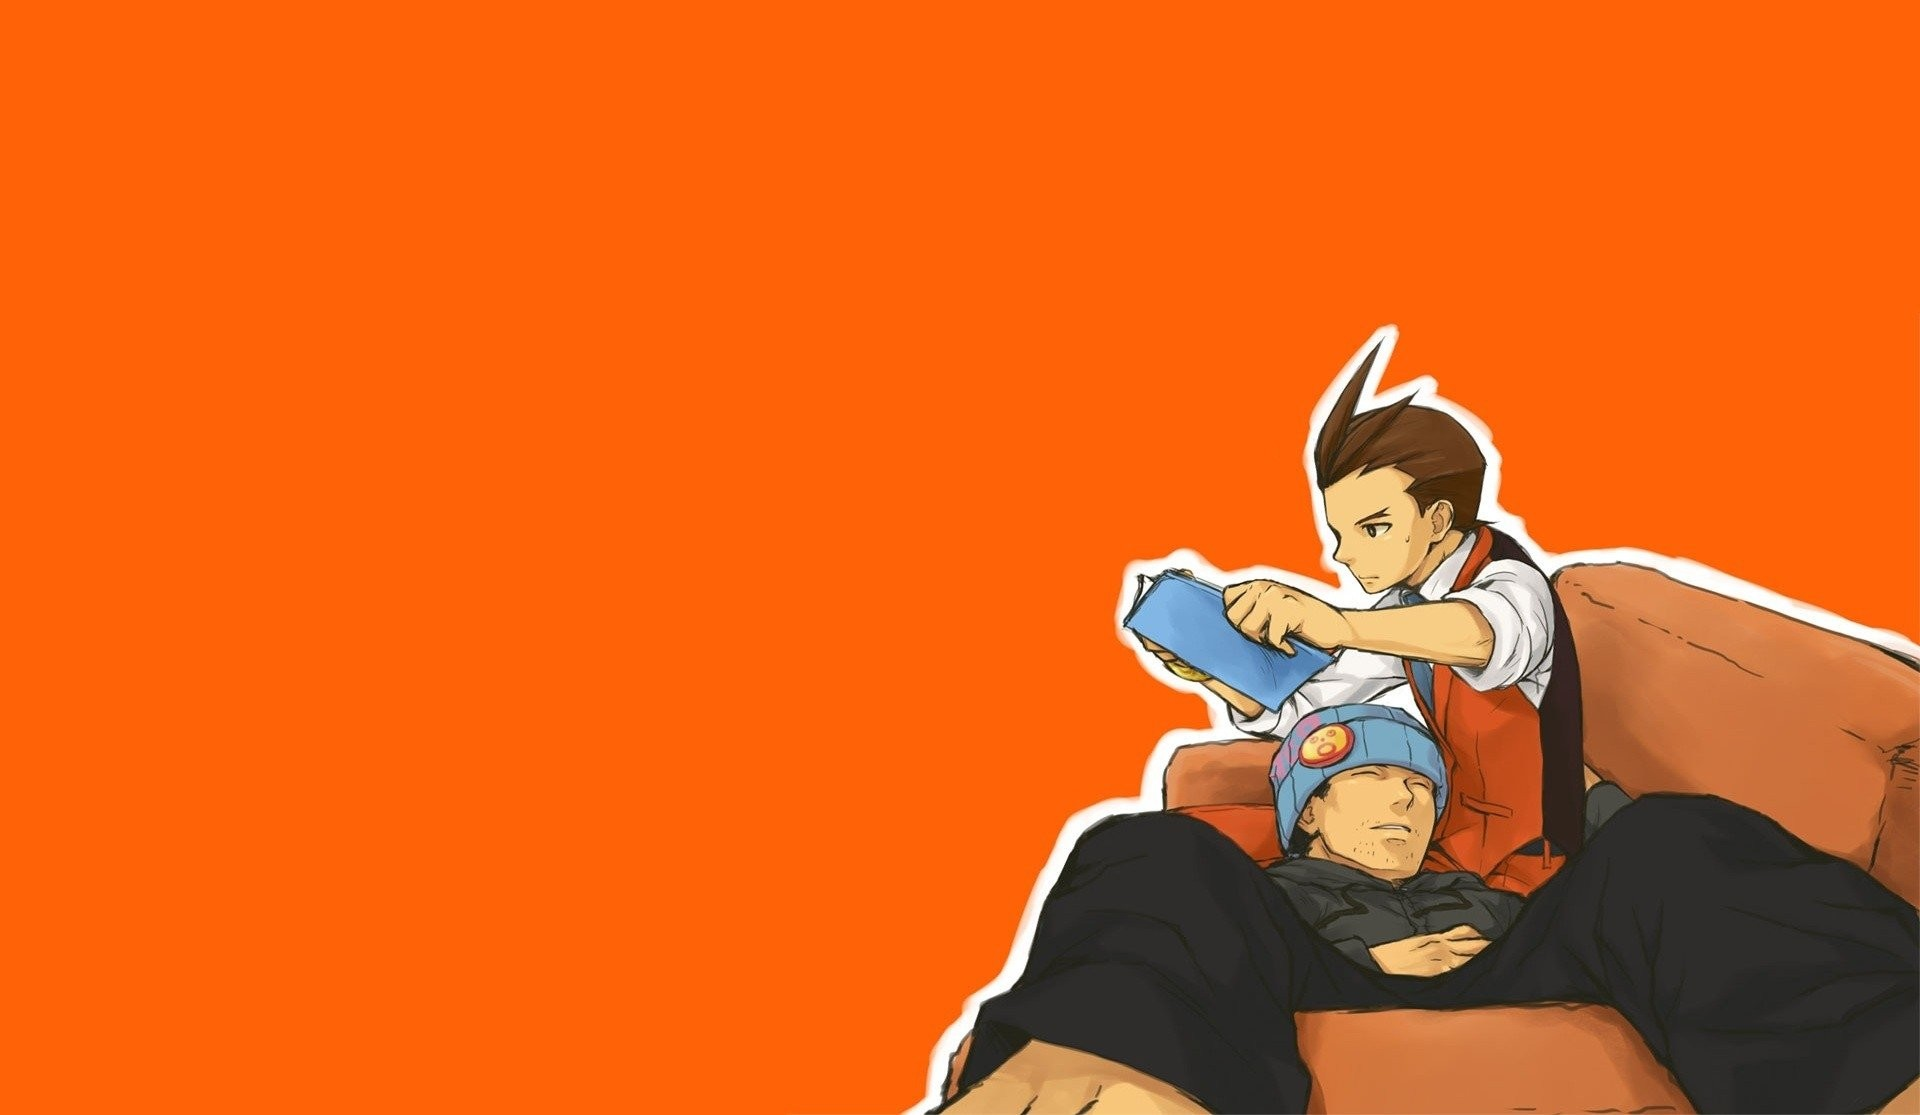 1920x1115 Video Game - Phoenix Wright: Ace Attorney Wallpaper